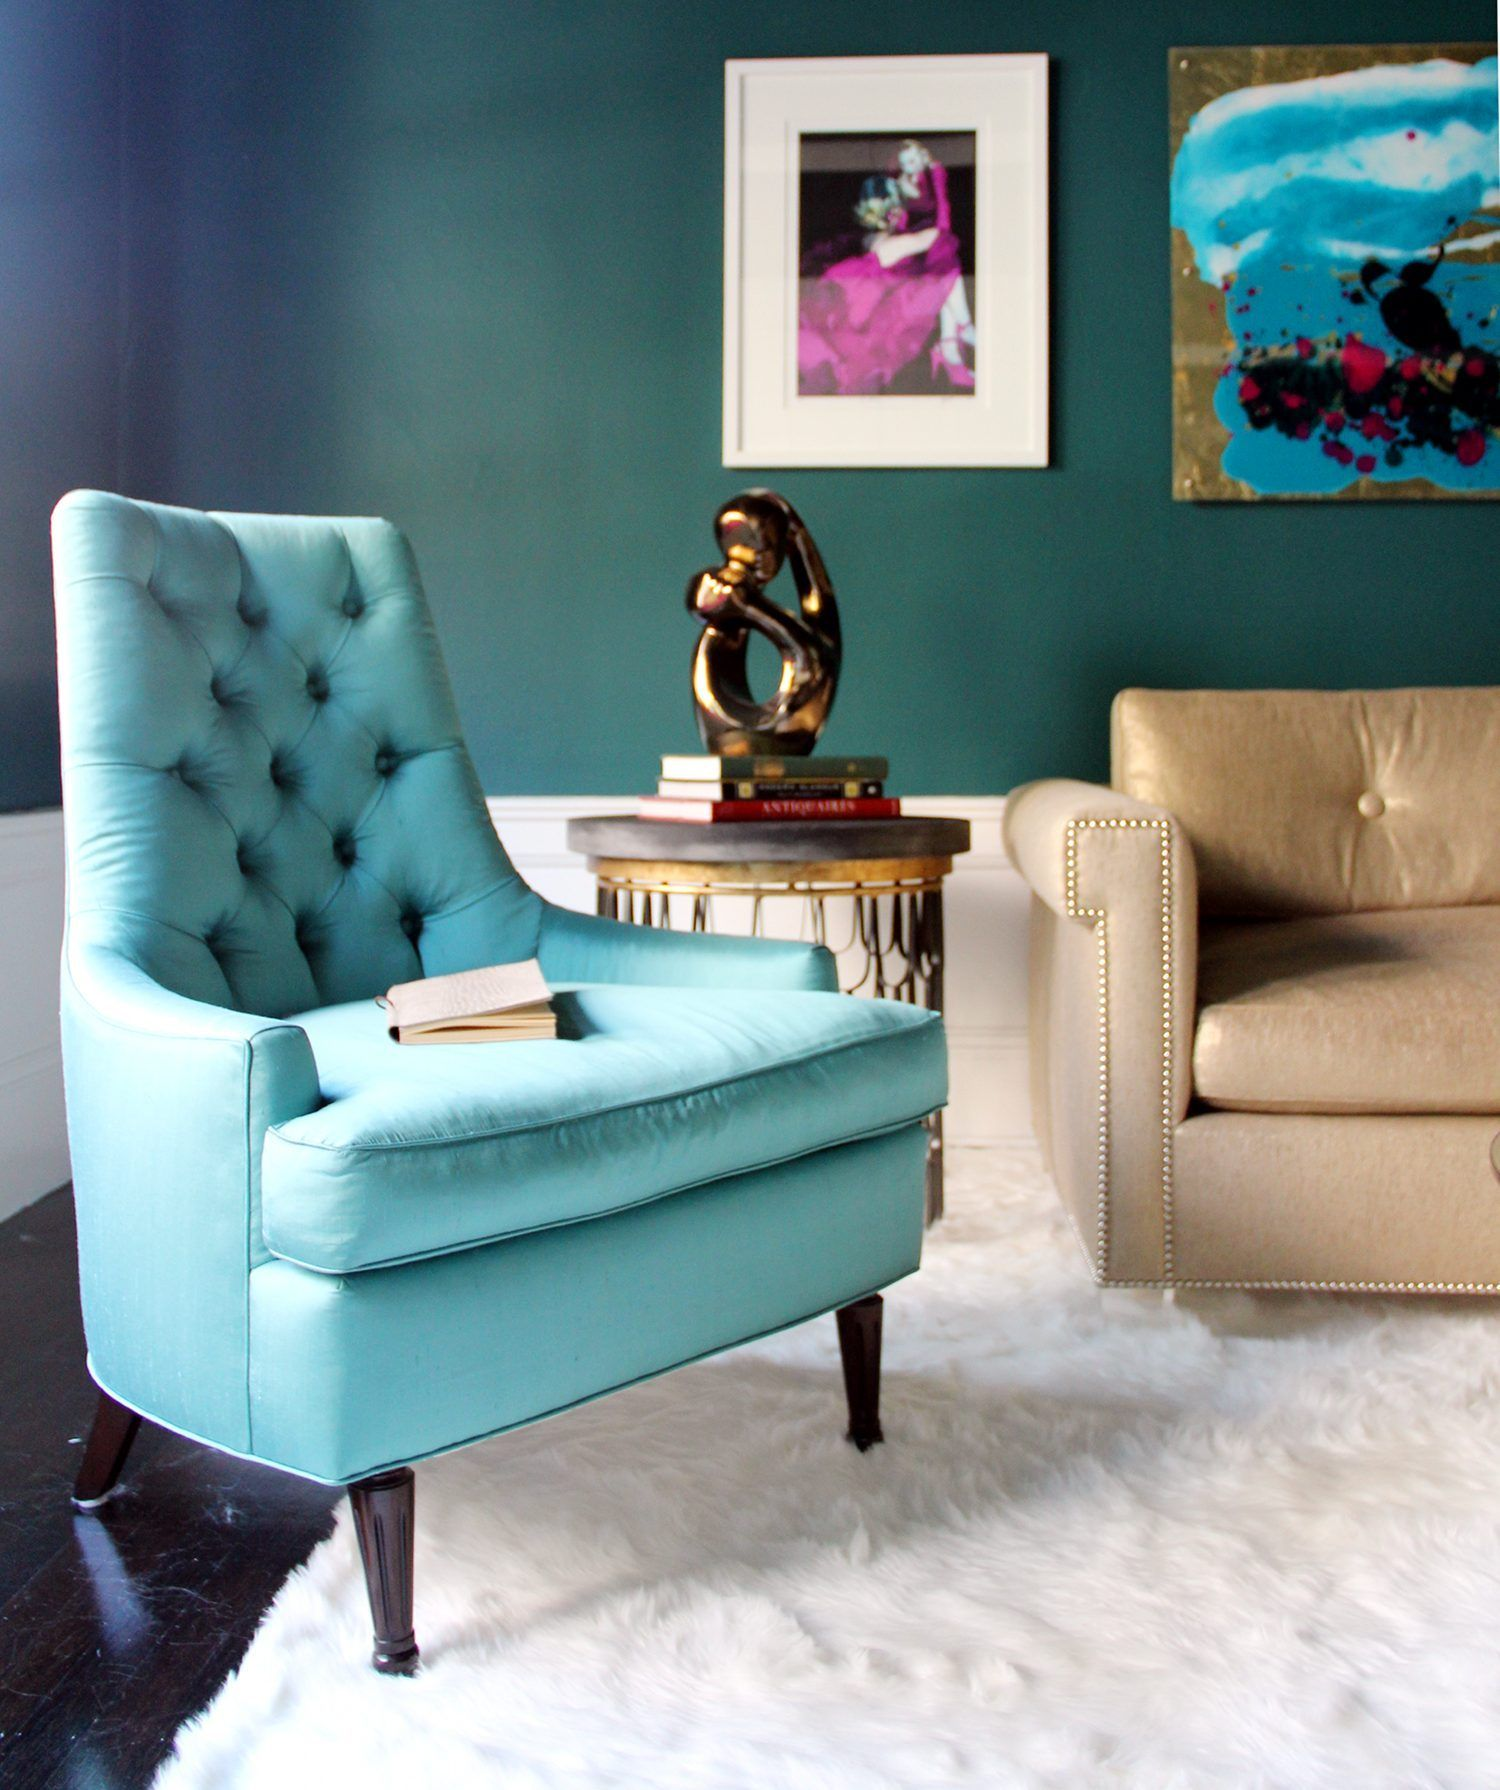 Paint colors that match this Apartment Therapy photo SW 9108